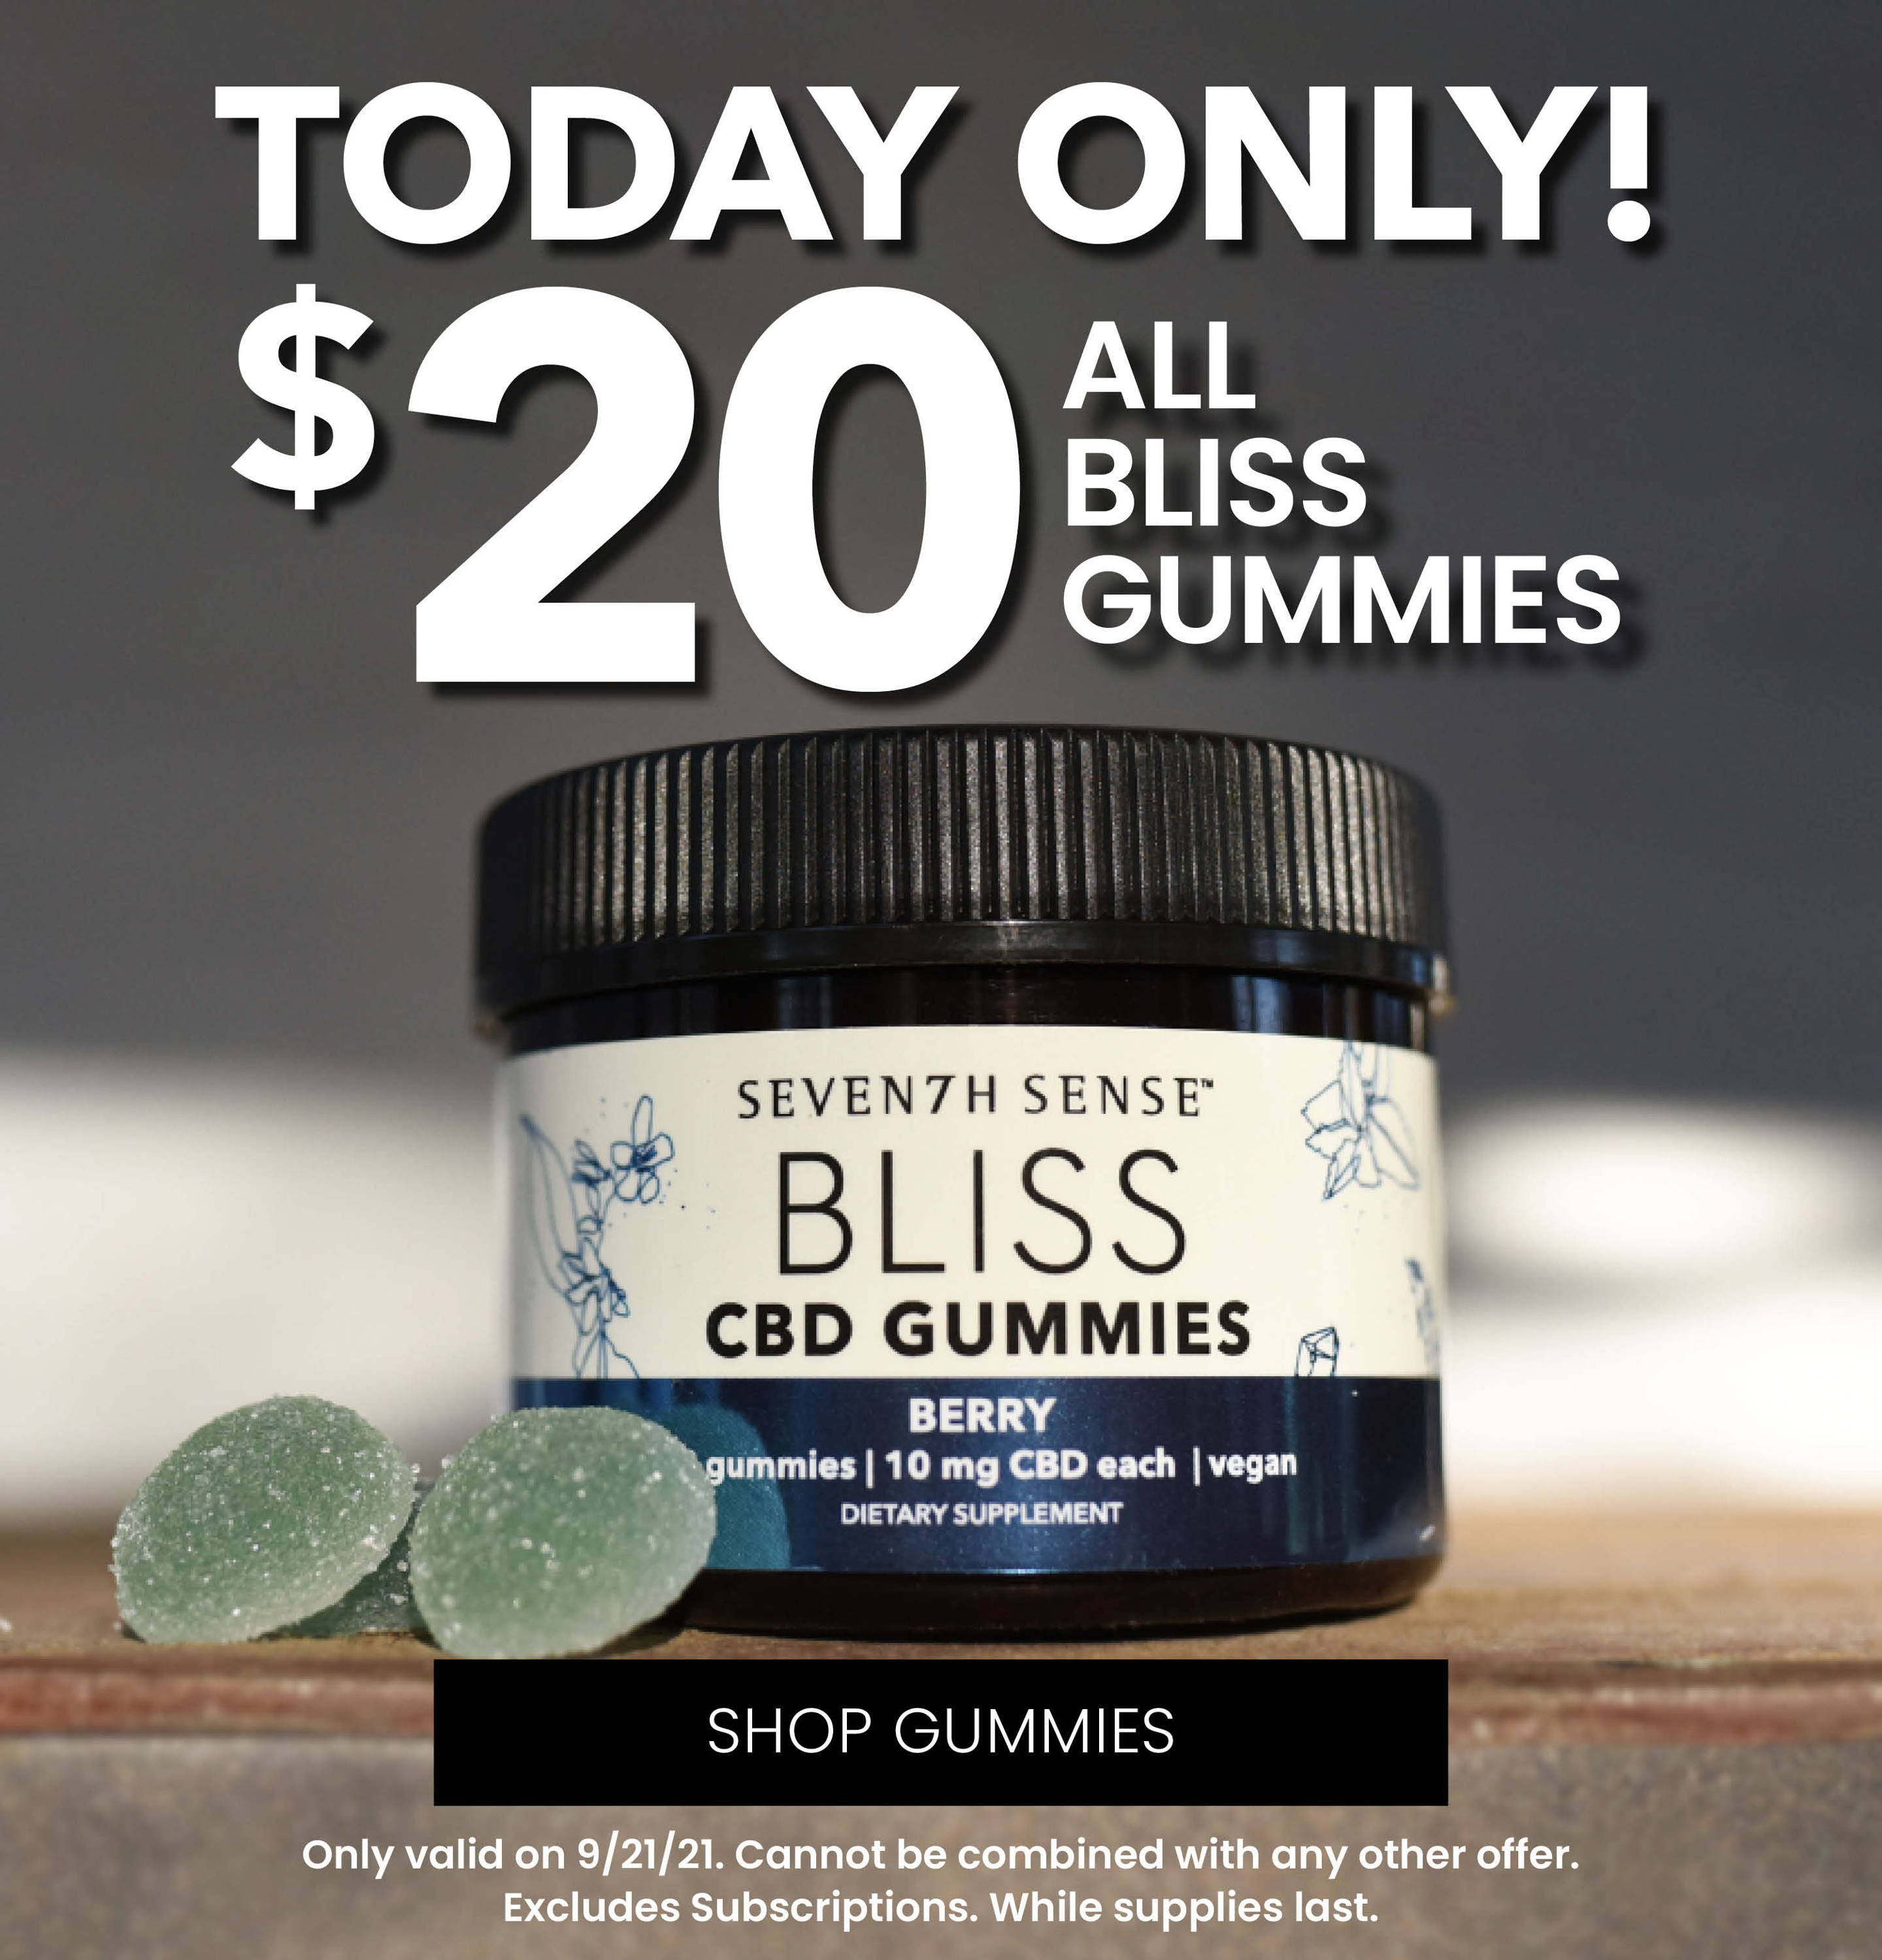 Today Only! $20 All Bliss Gummies. Only valid 9/21/21. Excludes subscriptions.